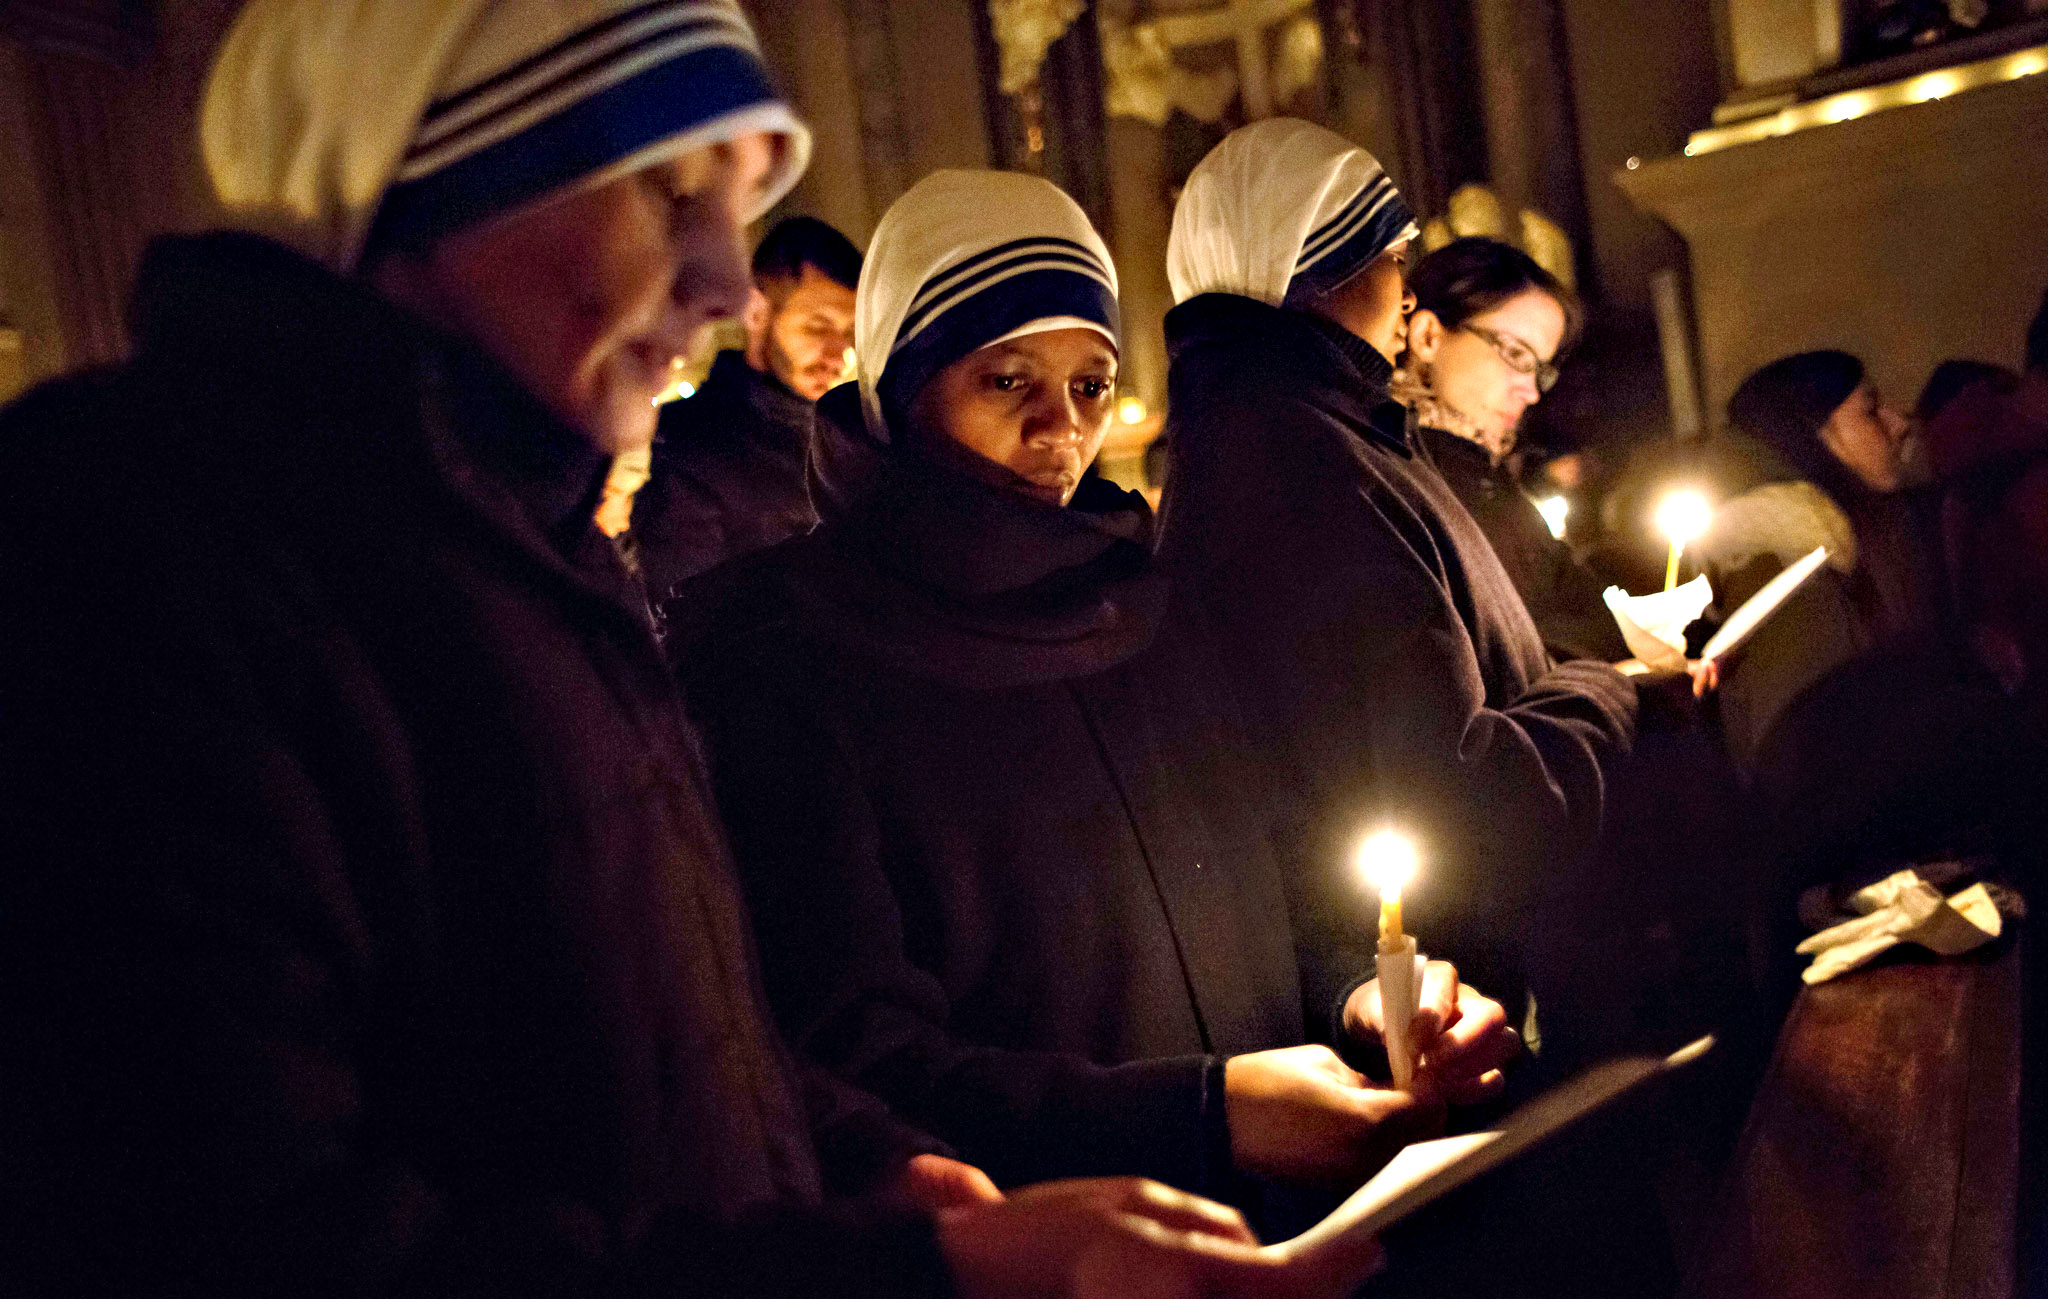 Nuns pray during an early morning Rorate mass in Frnaciscan church in Bratislava on December 17, 2015.   Rorate Mass which is traditionally celebrated in Advent, in honour of Holy Mary, in the dark of the morning before sunrise, by candlelight.